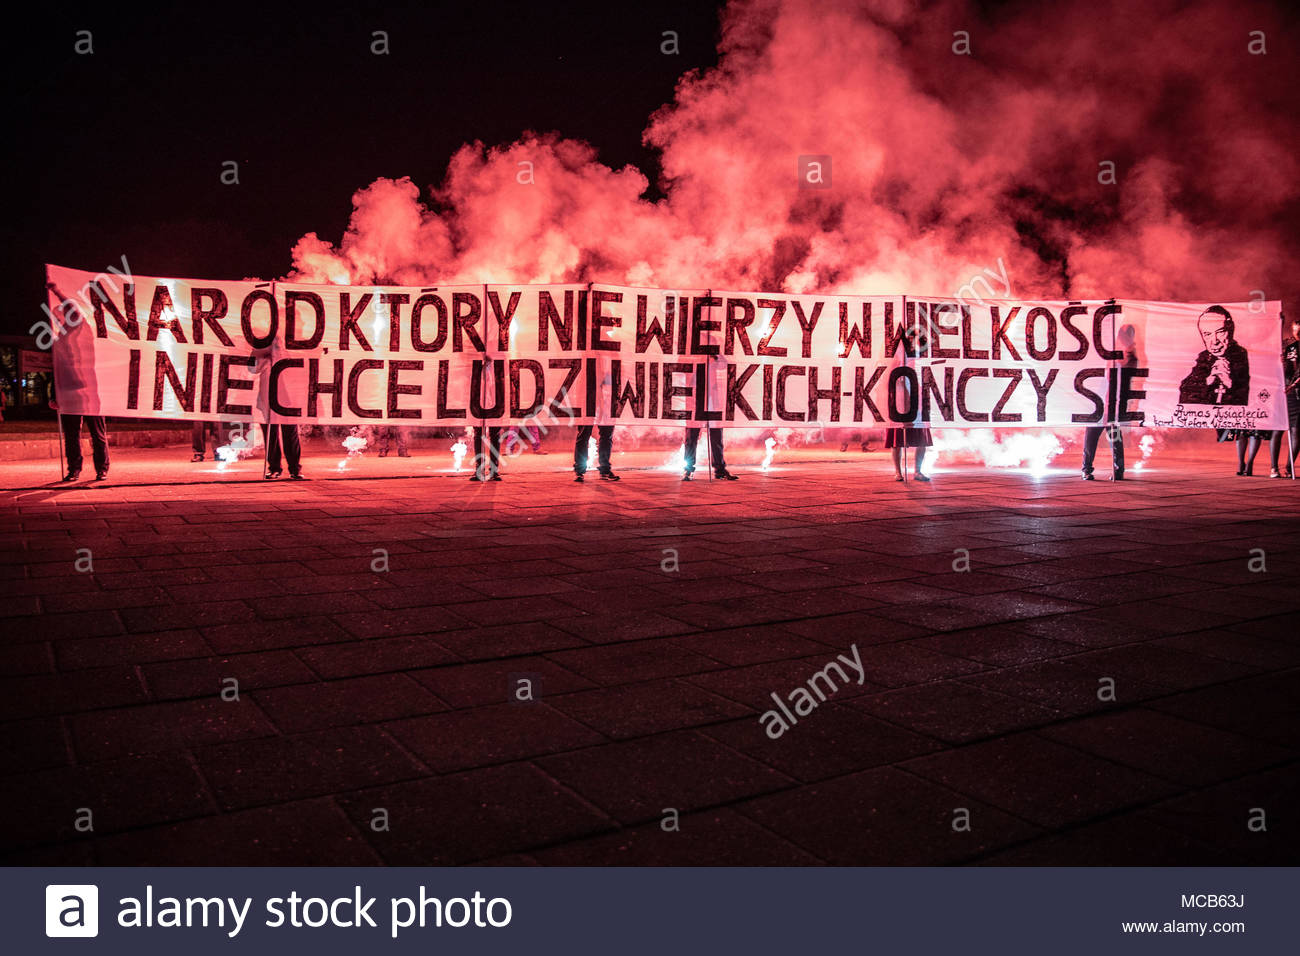 Czestochowa, Poland. 14th Apr, 2018. People hold banner and burn flares as far-right nationalists belonging to the All-Polish Youth organization take part in a torch-lit 'pilgrimage' at Jasna Gora Monastery, in Czestochowa on April 14, 2018. Its agenda proclaims that its aim is to raise Polish youth in a Catholic and patriotic spirit. Currently it plays main role as part of the National Movement party. (c) copyright Credit: CrowdSpark/Alamy Live News - Stock Image